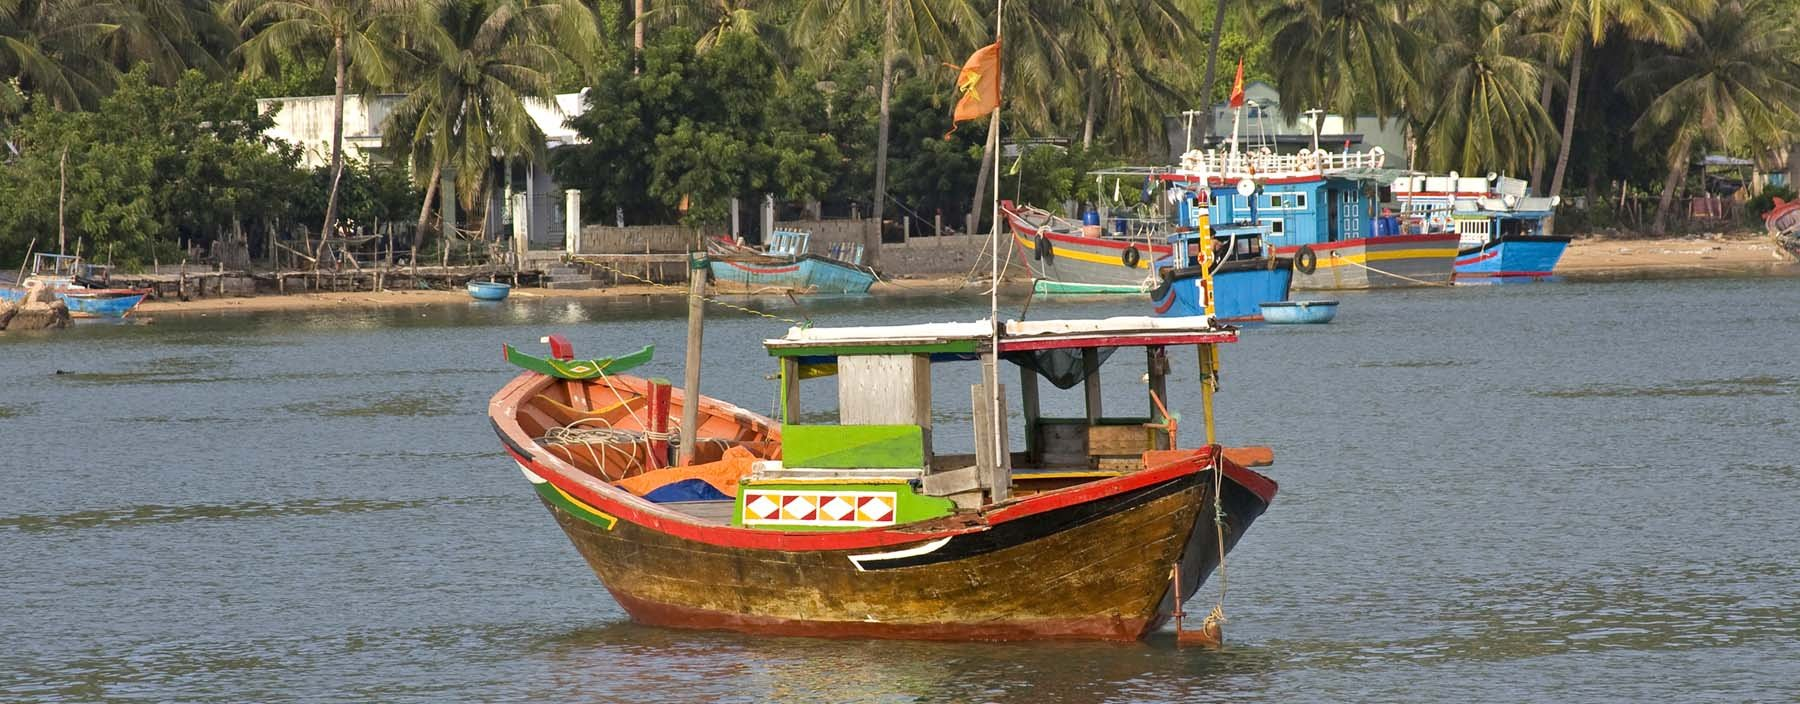 vn, vinh, fishing boats in the bay of vinh hy.jpg